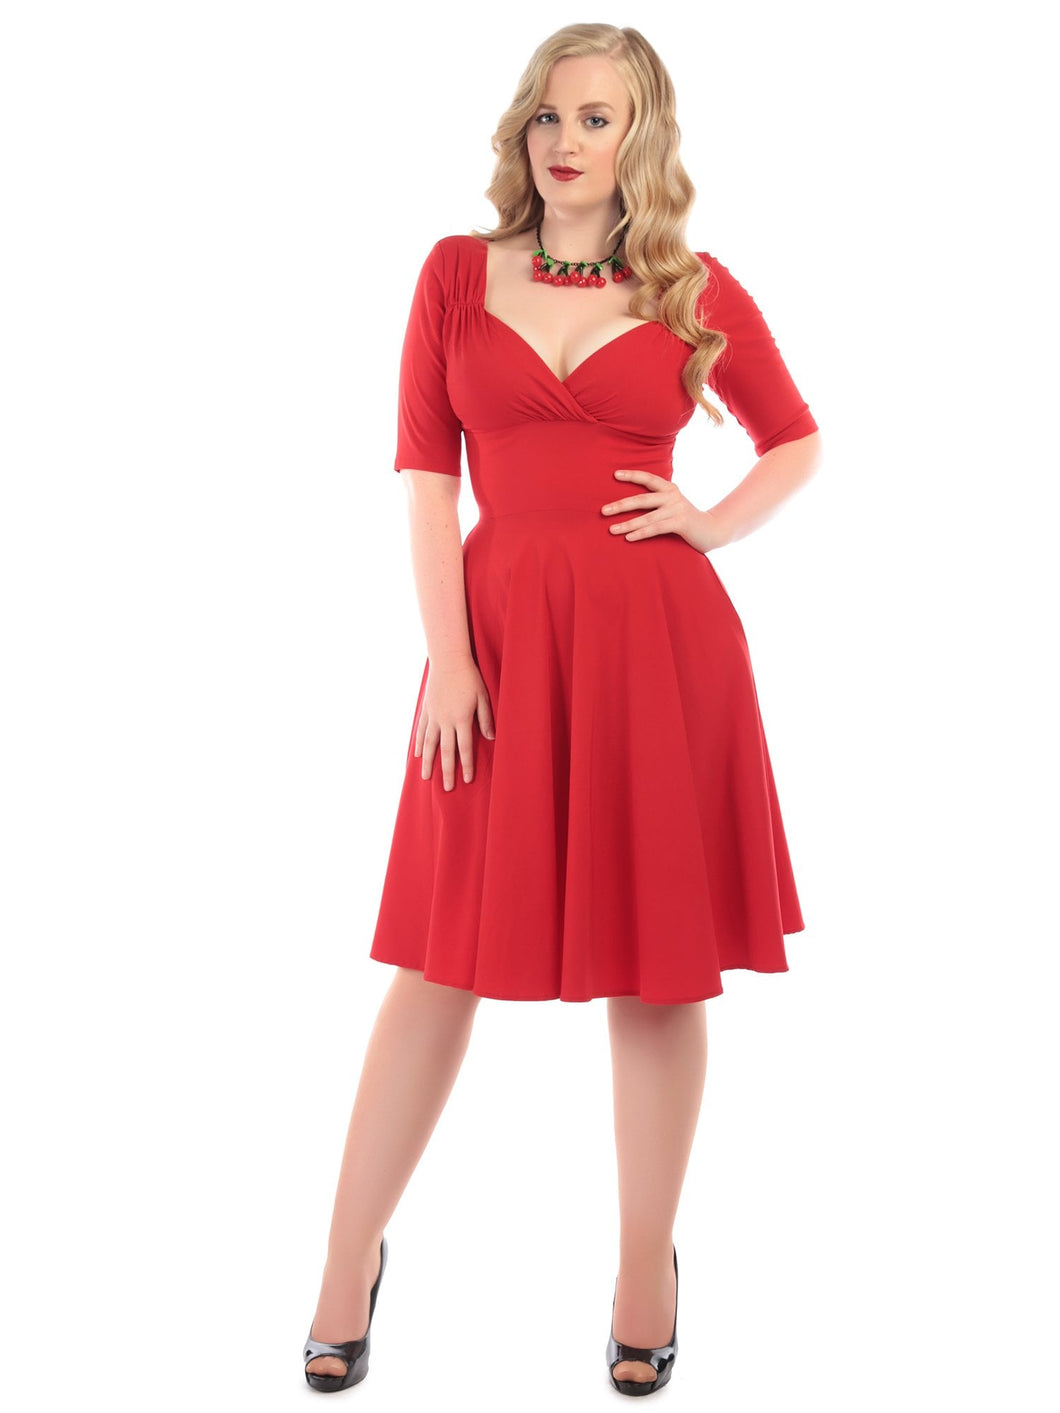 Trixie Doll dress -red